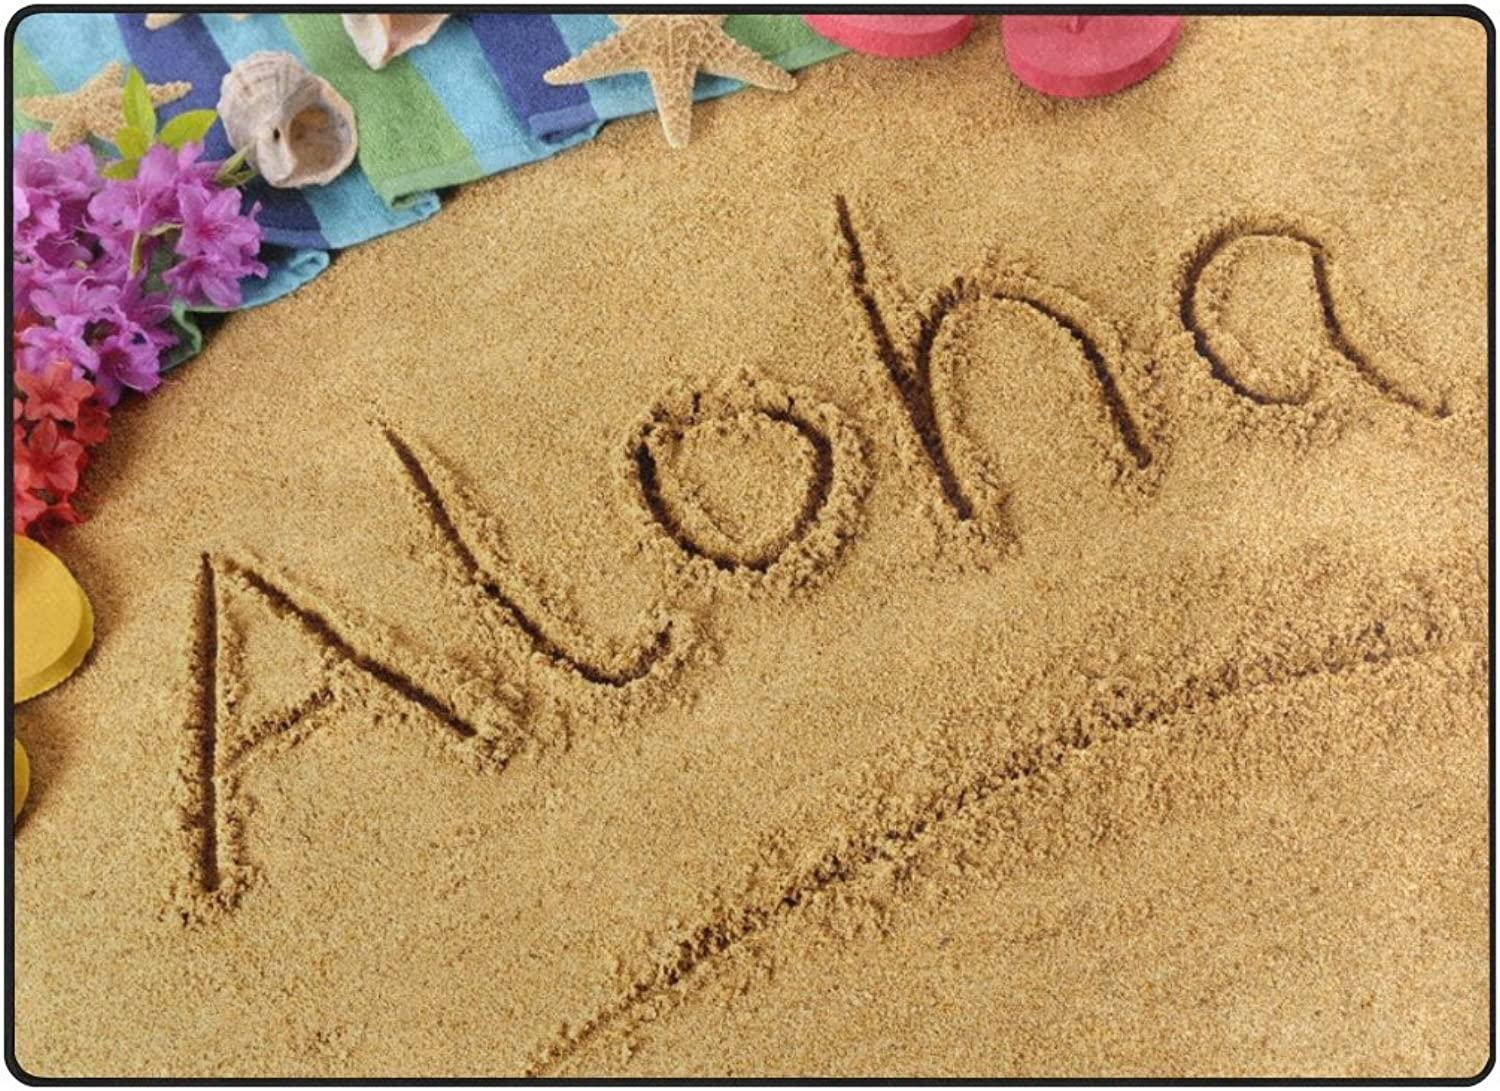 SUABO 80 x 58 inches Area Rug Non-Slip Floor Mat Aloha with Sand Printed Doormats for Living Room Bedroom